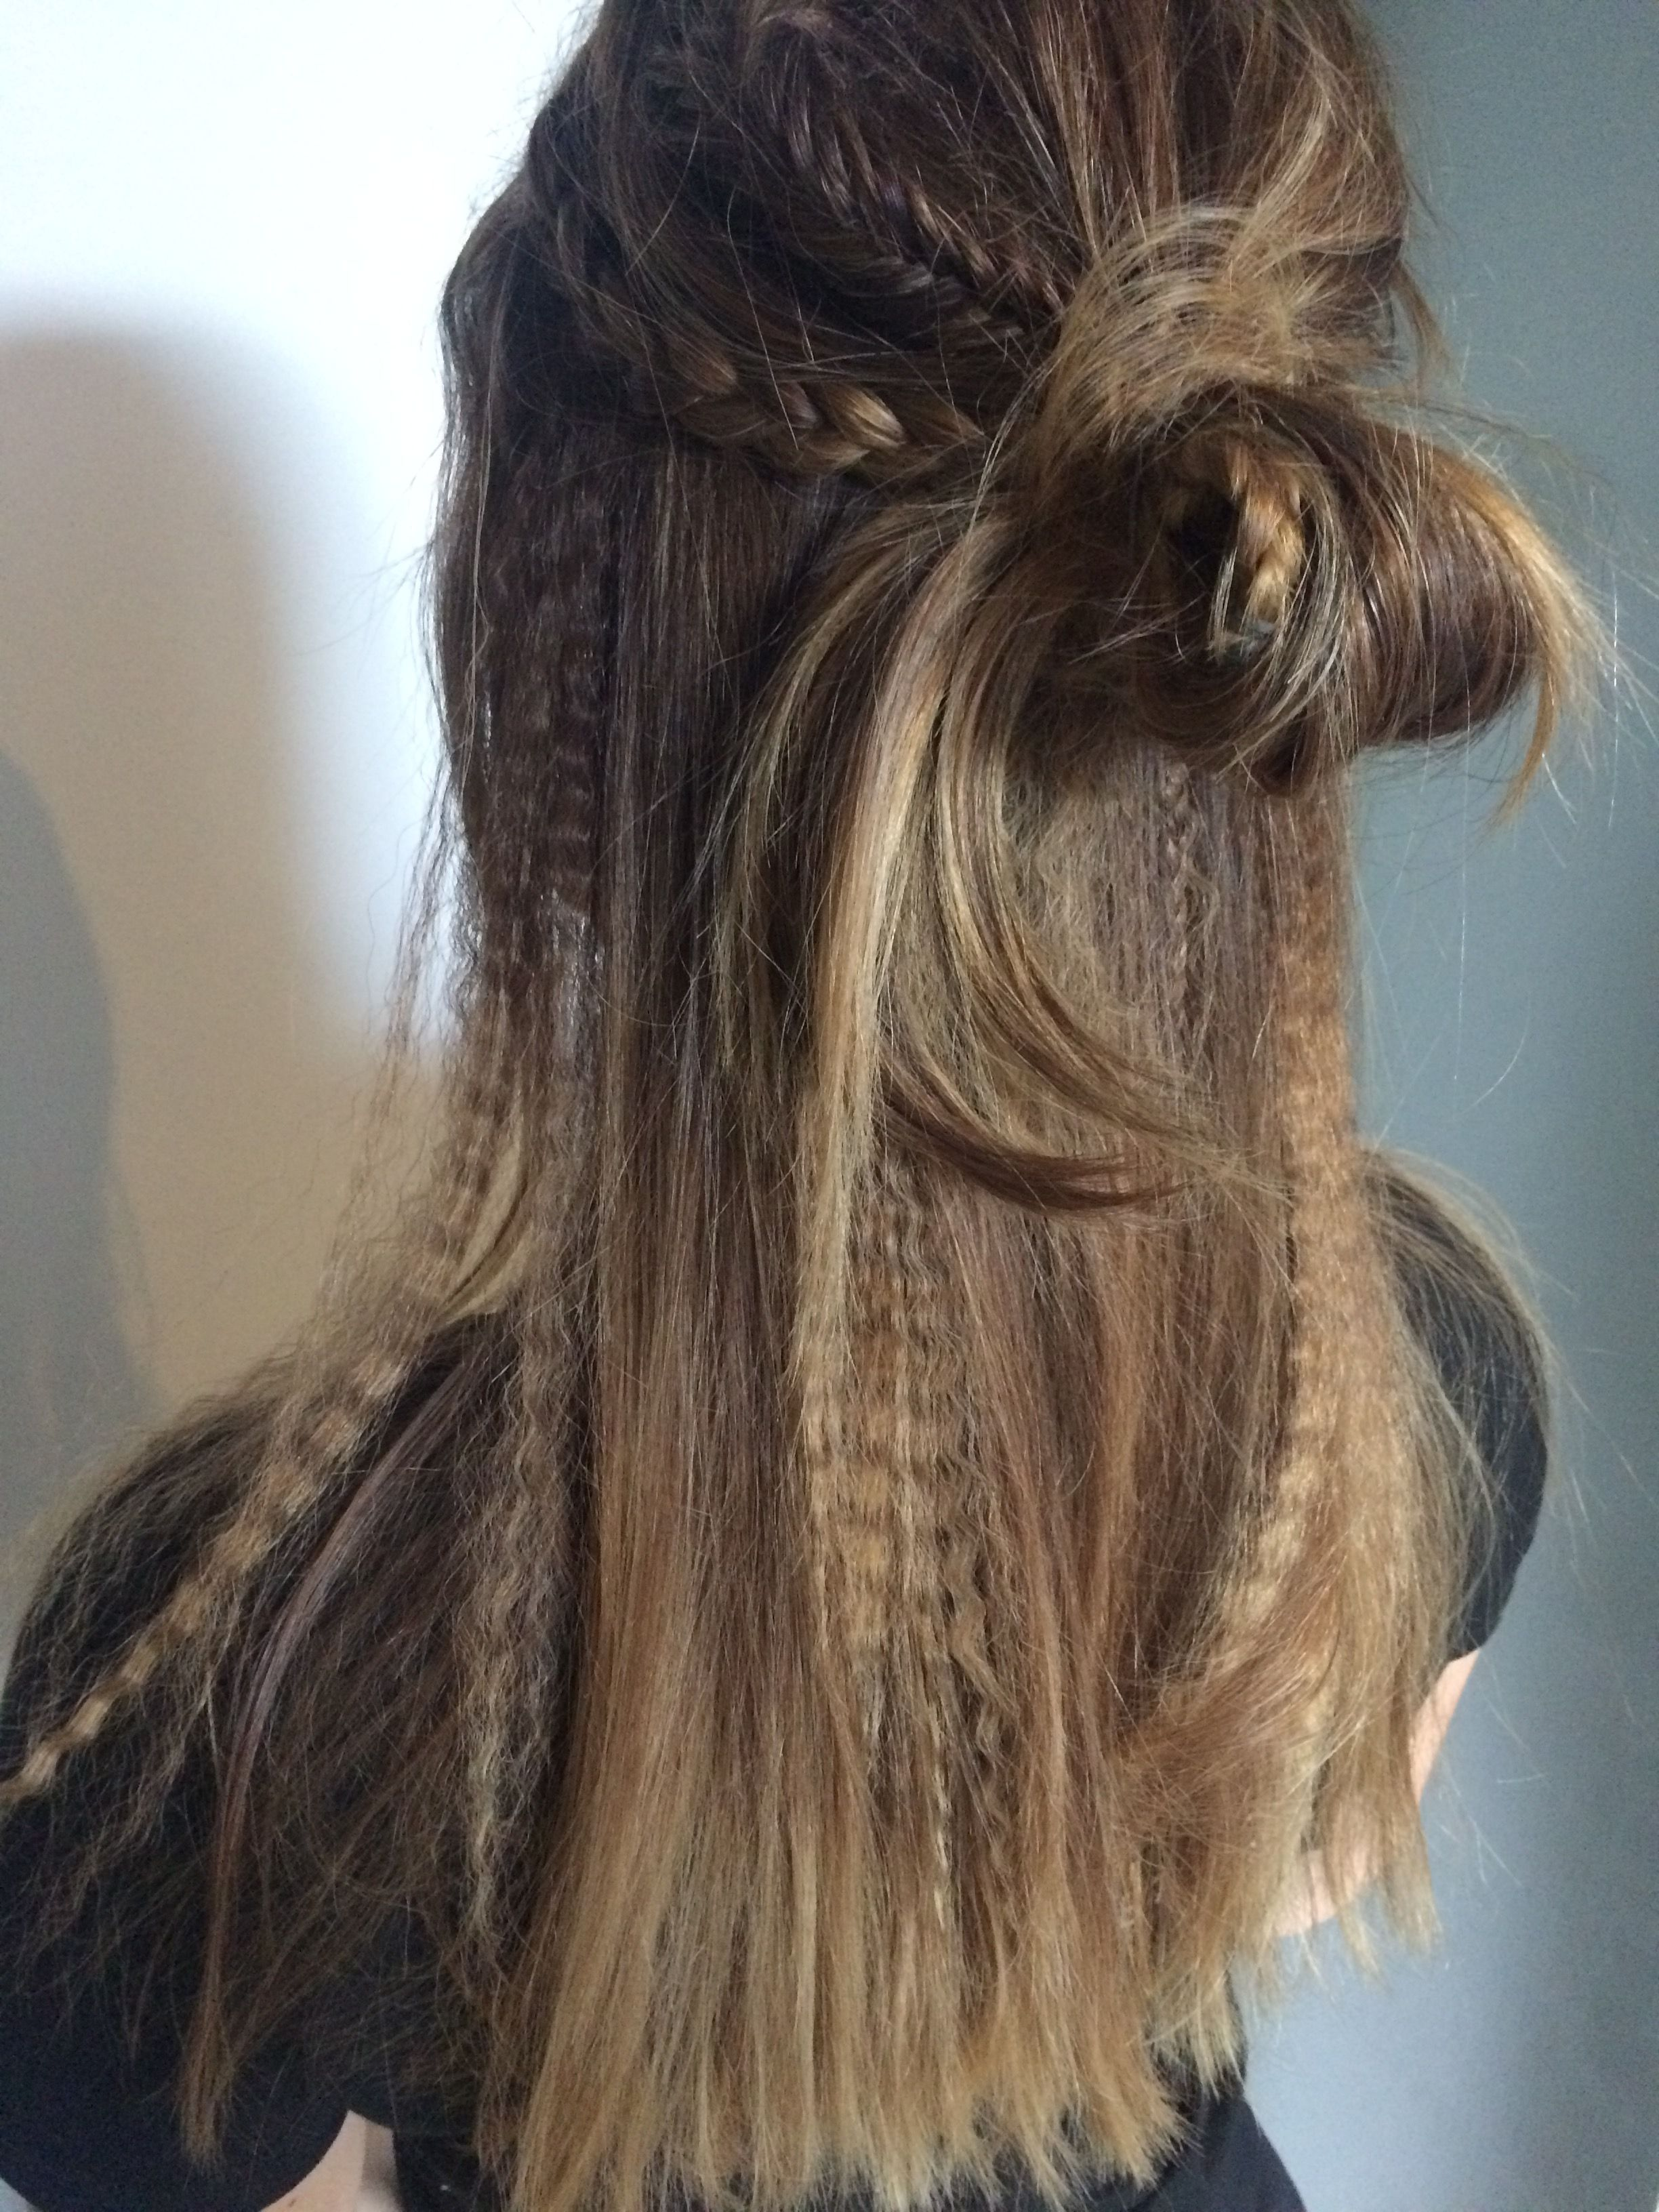 festival hairstyles messy half updo knot braids fishtail